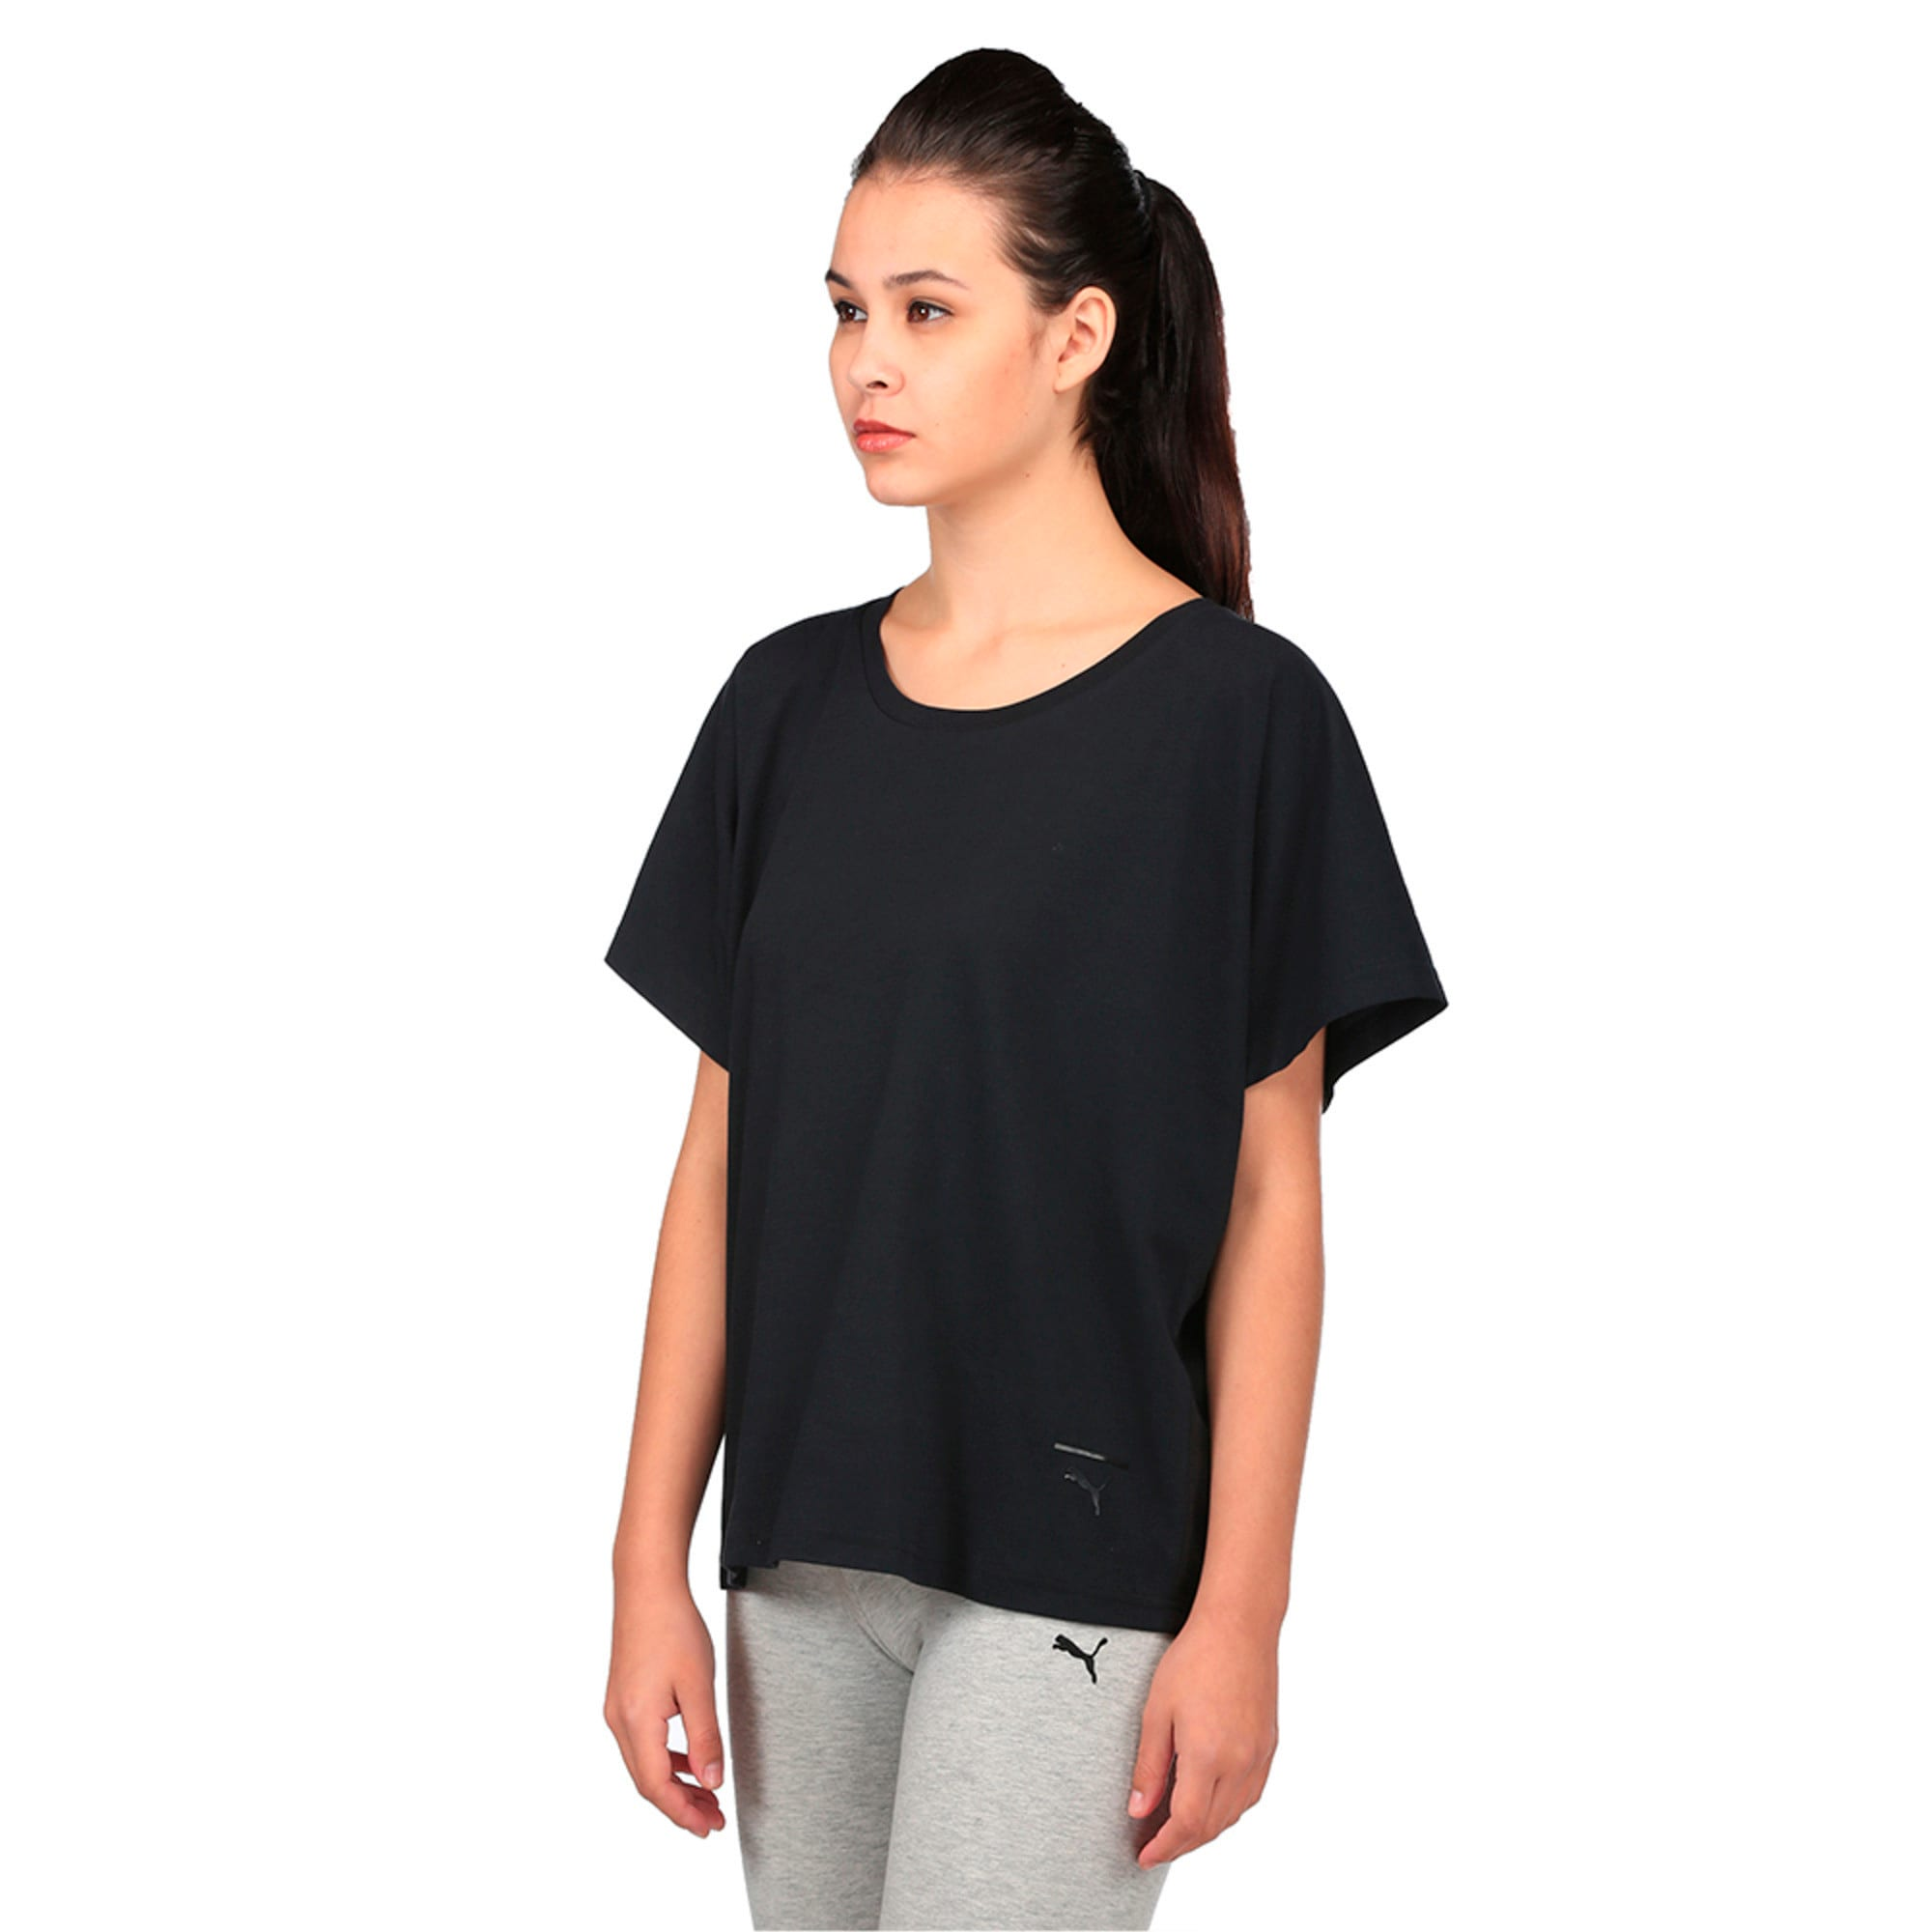 Thumbnail 2 of Evolution Women's T-Shirt, Puma Black, medium-IND